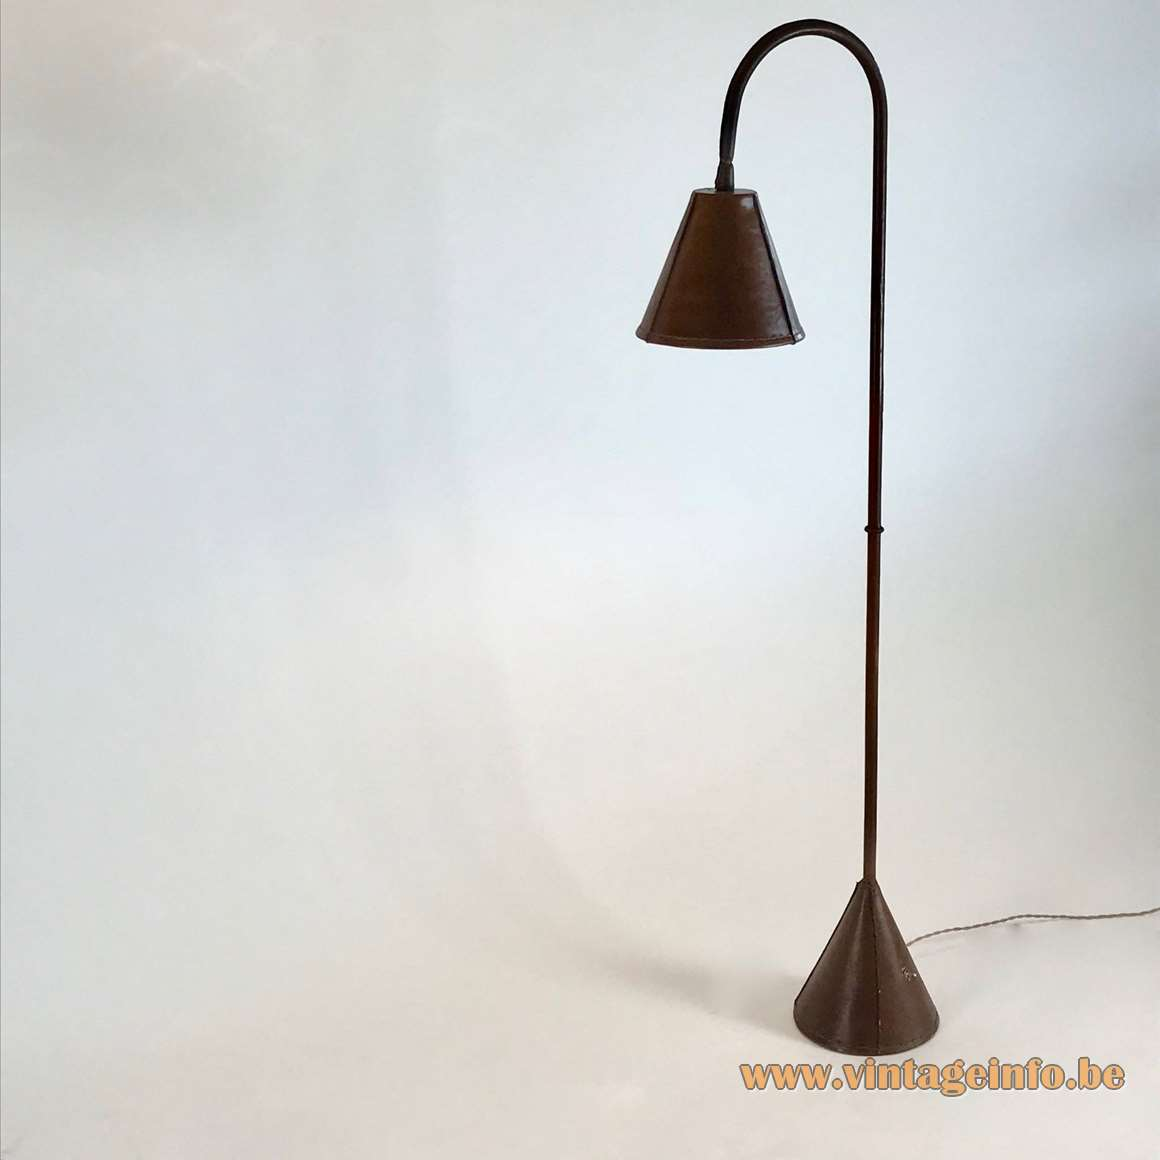 Valenti leather floor lamp brown conical base and lampshade long rod Jacques Adnet 1950s 1960s Spain